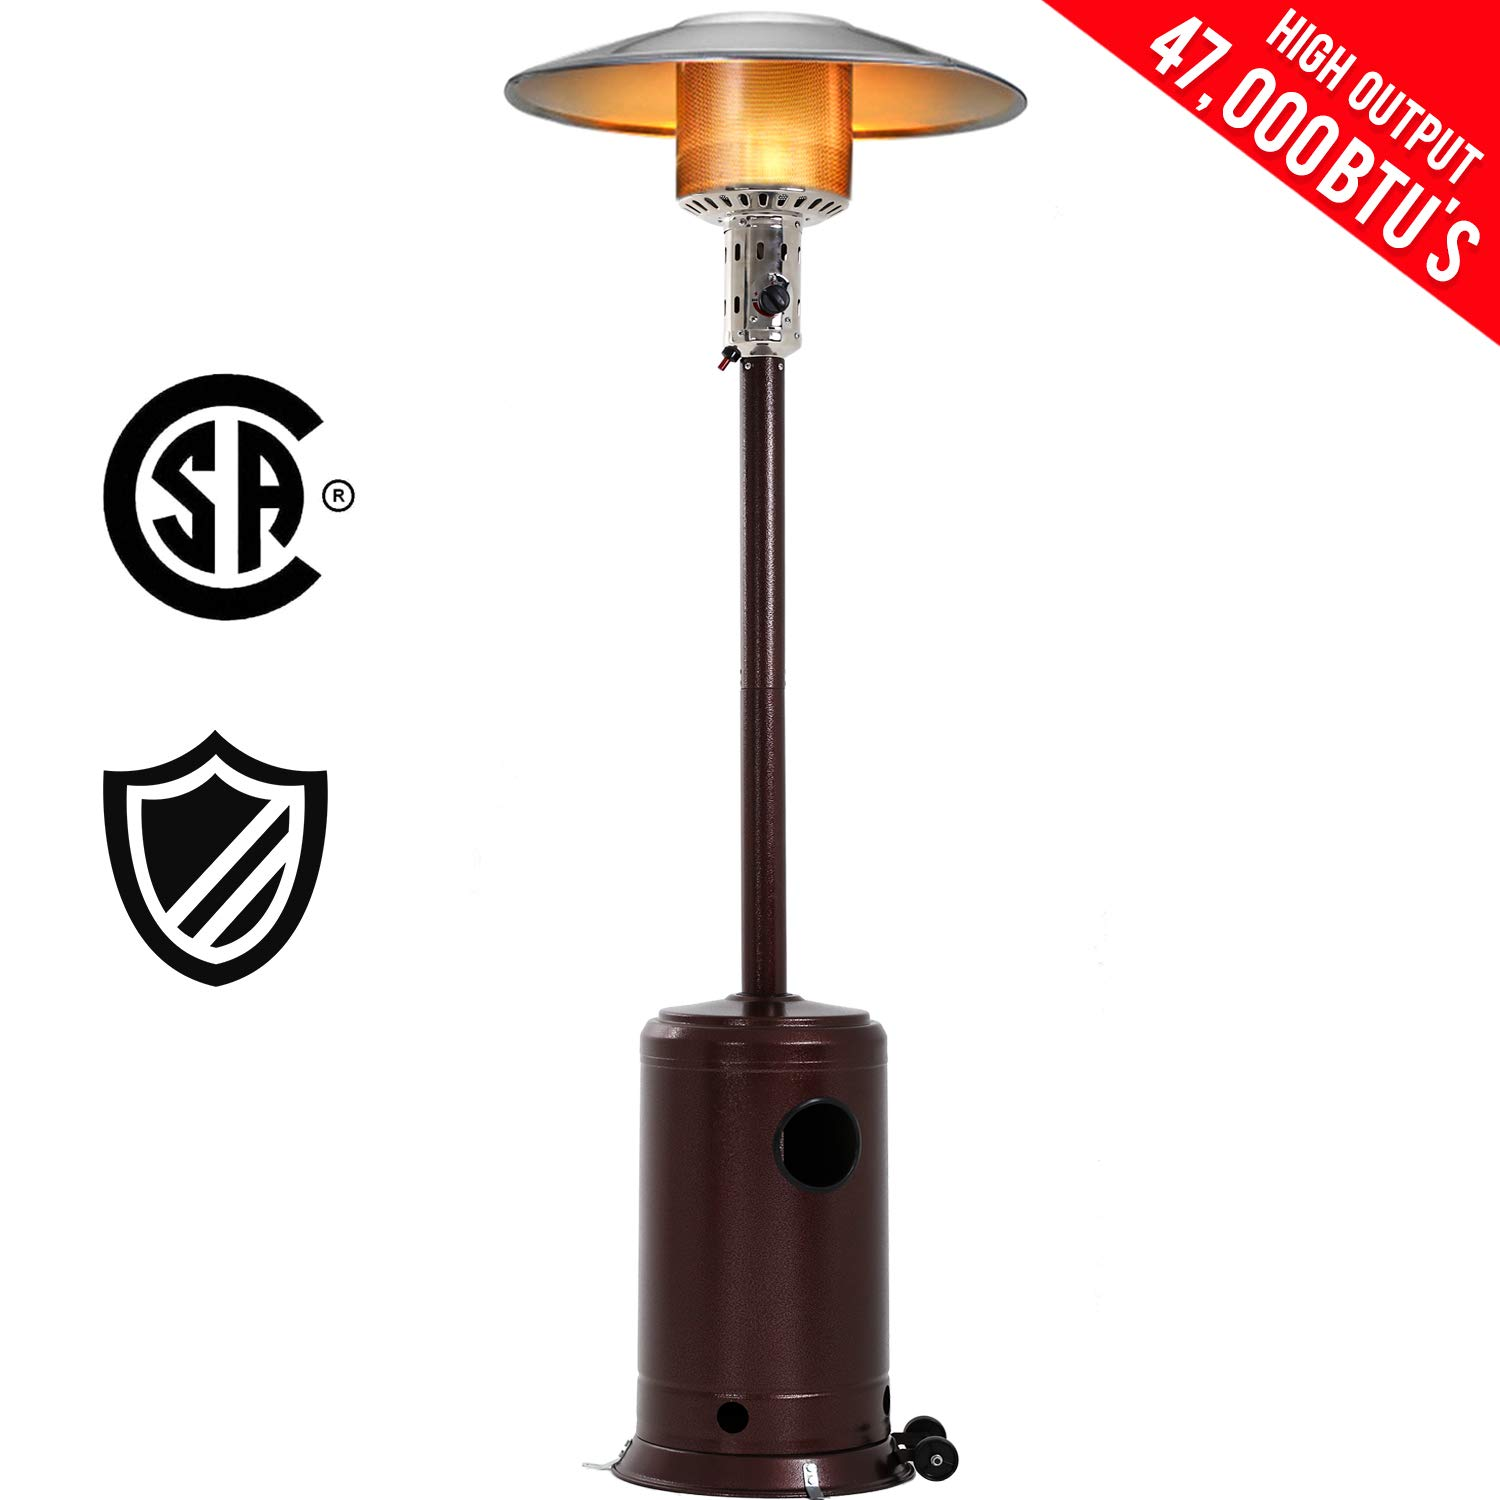 Patio Heater Tall Hammered Finish Garden Outdoor Heater Propane Standing LP Gas Steel w/Accessories by FDW